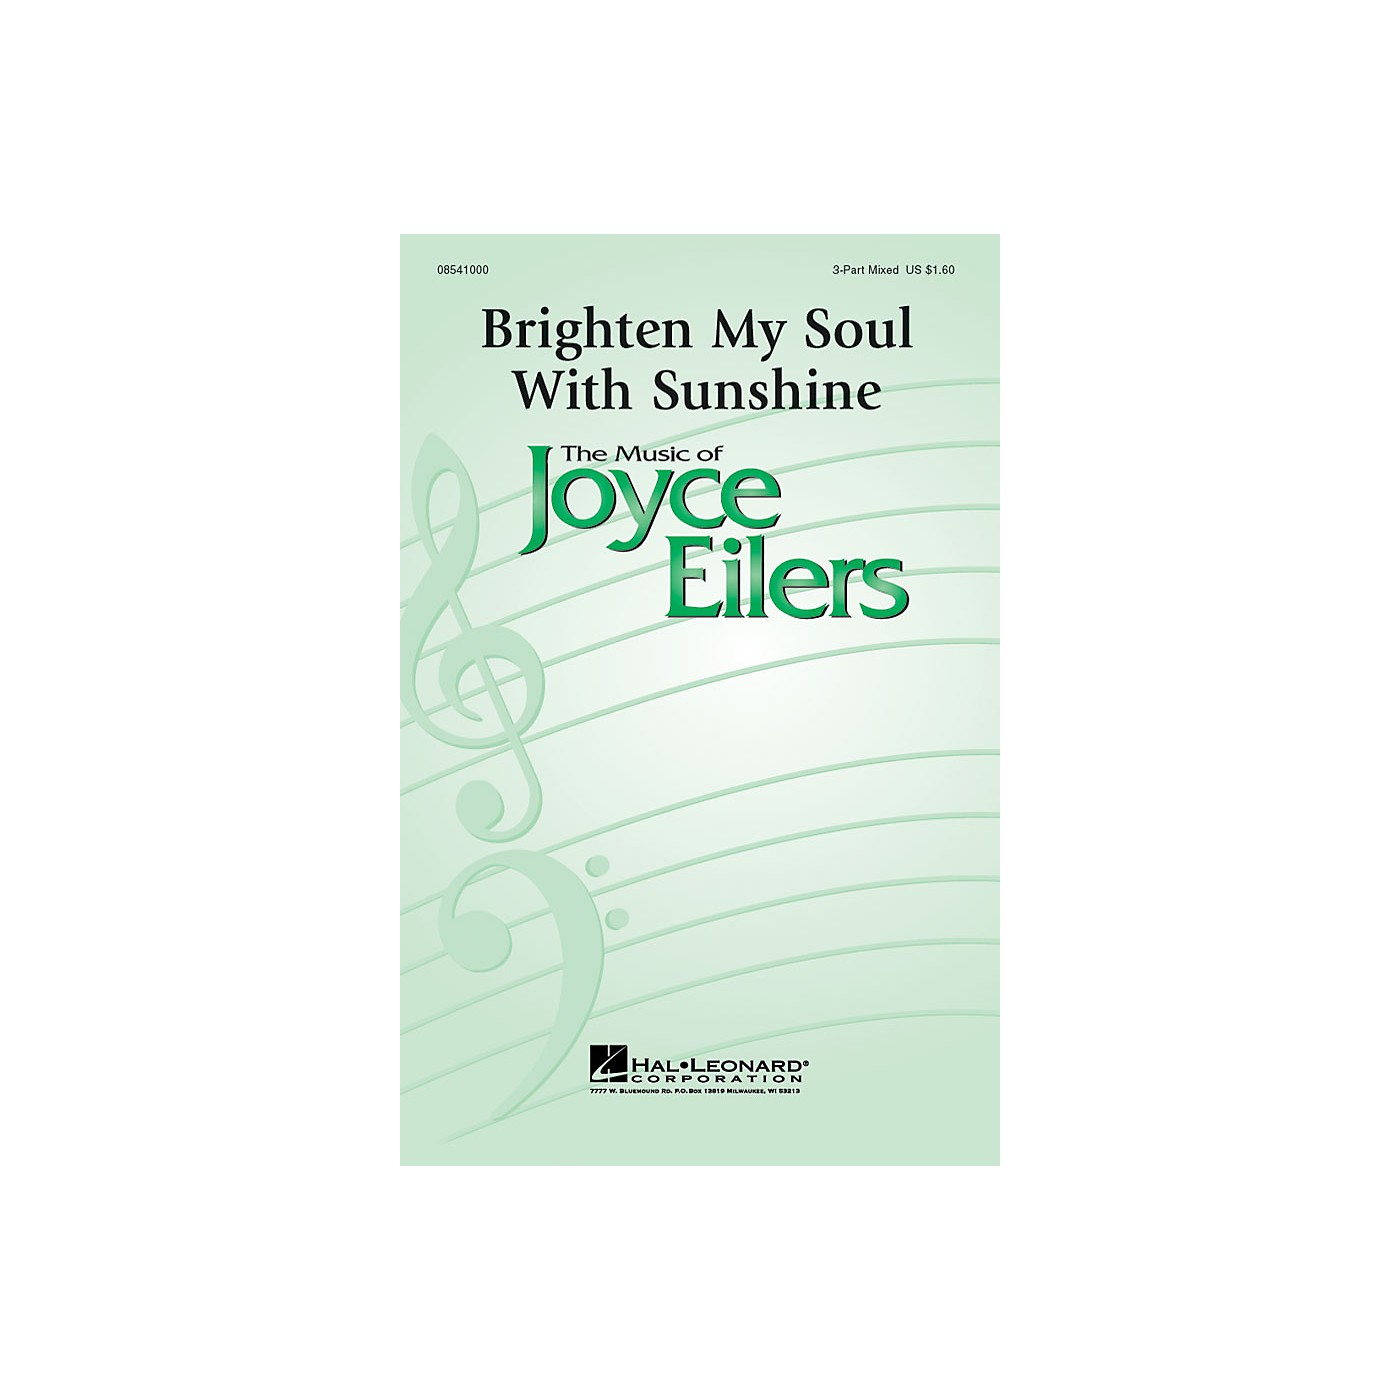 Hal Leonard Brighten My Soul with Sunshine 3-Part Mixed composed by Joyce Eilers thumbnail